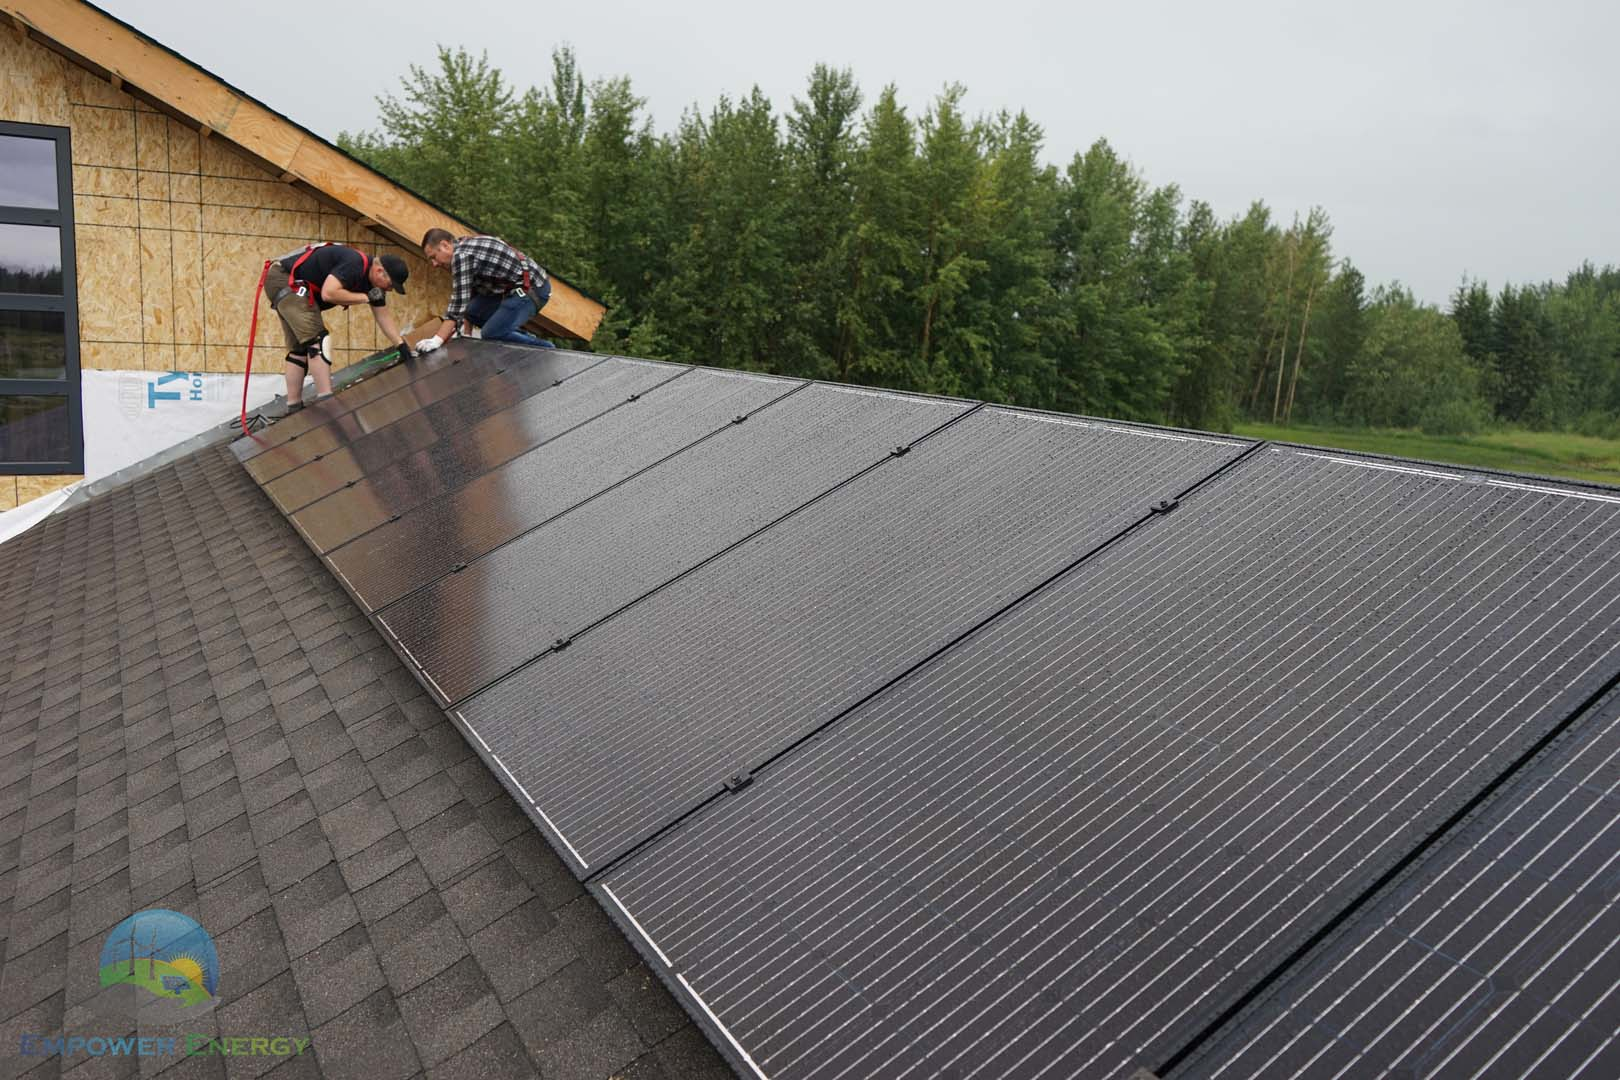 2 85 Kw Residential Solar Pv Empower Energy Corp